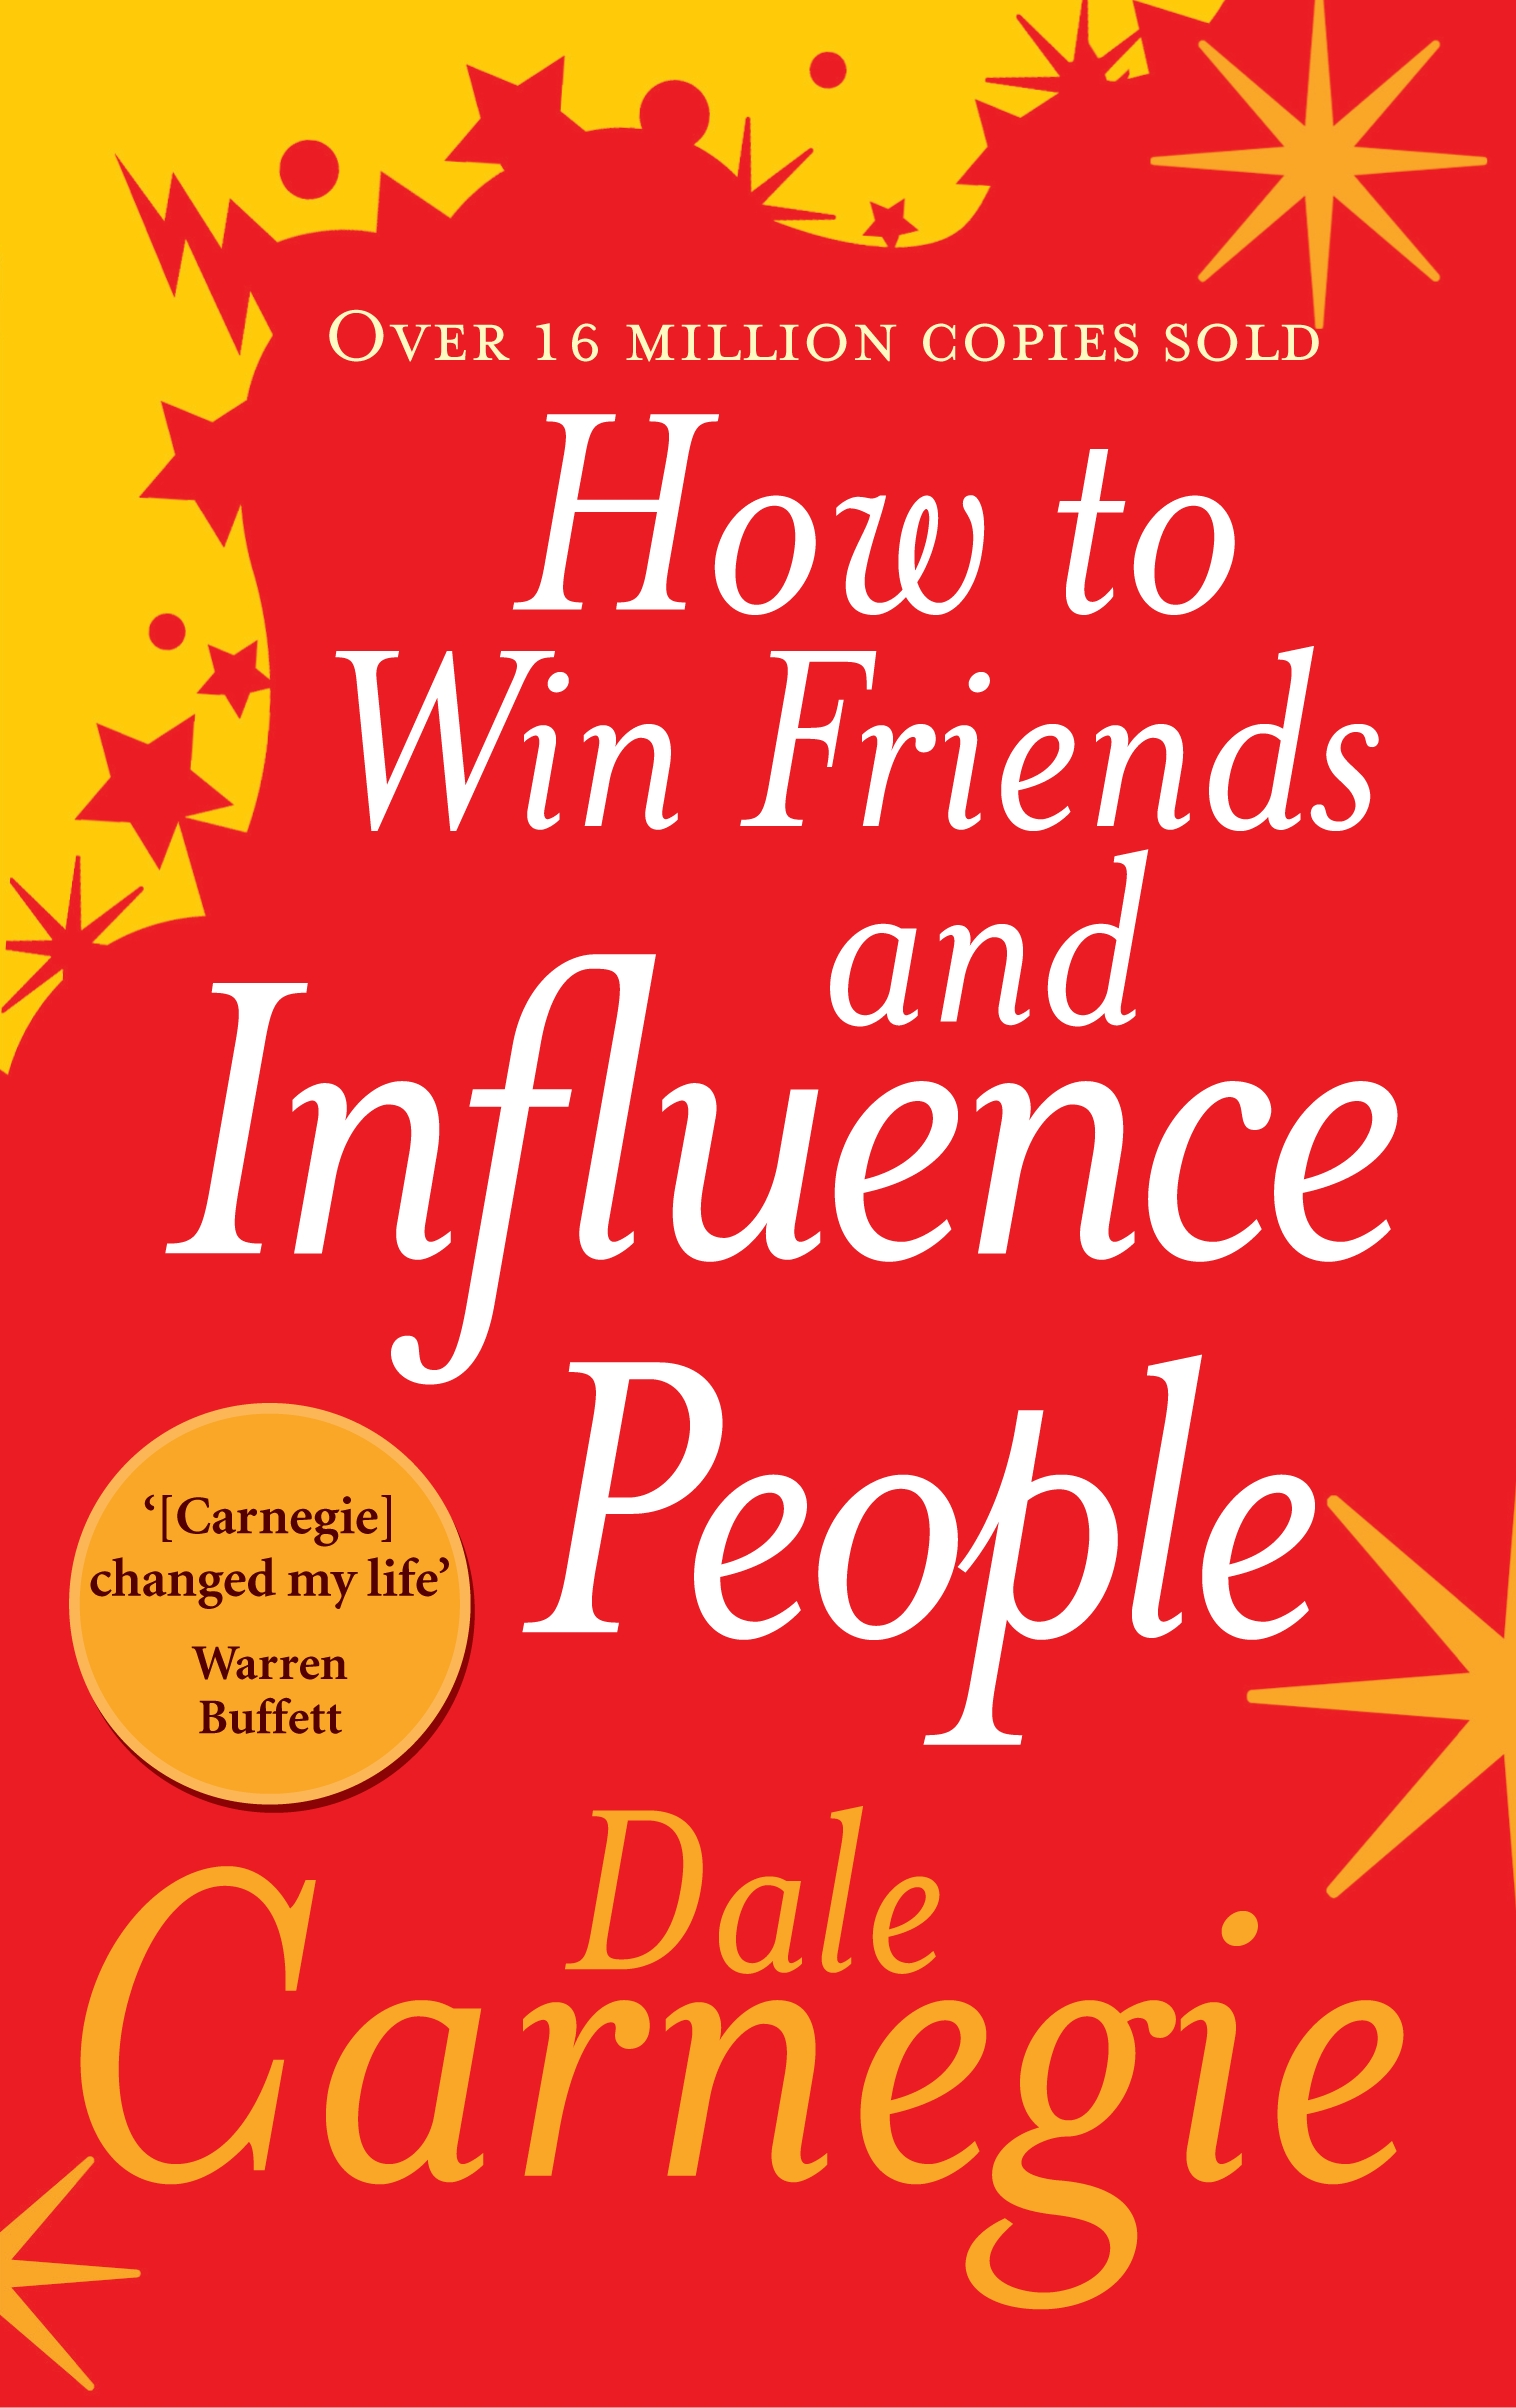 how to make friends and influence These are ways to win friends and influence people using psychology without being a jerk or making someone feel bad  and is a great way to make you .